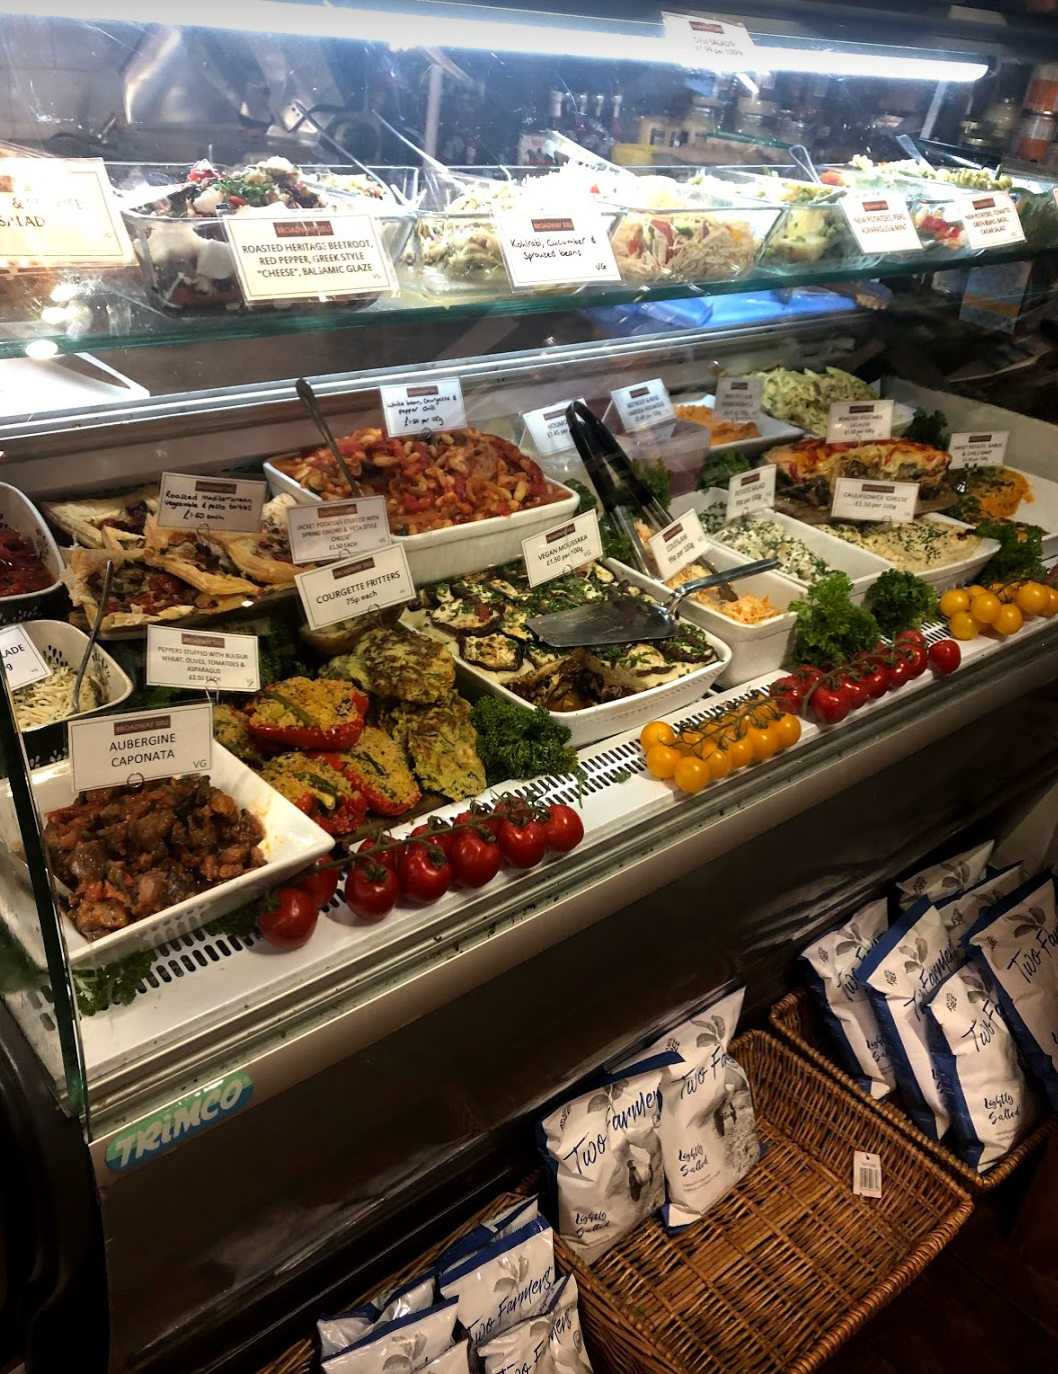 Inside the Cotswolds Deli